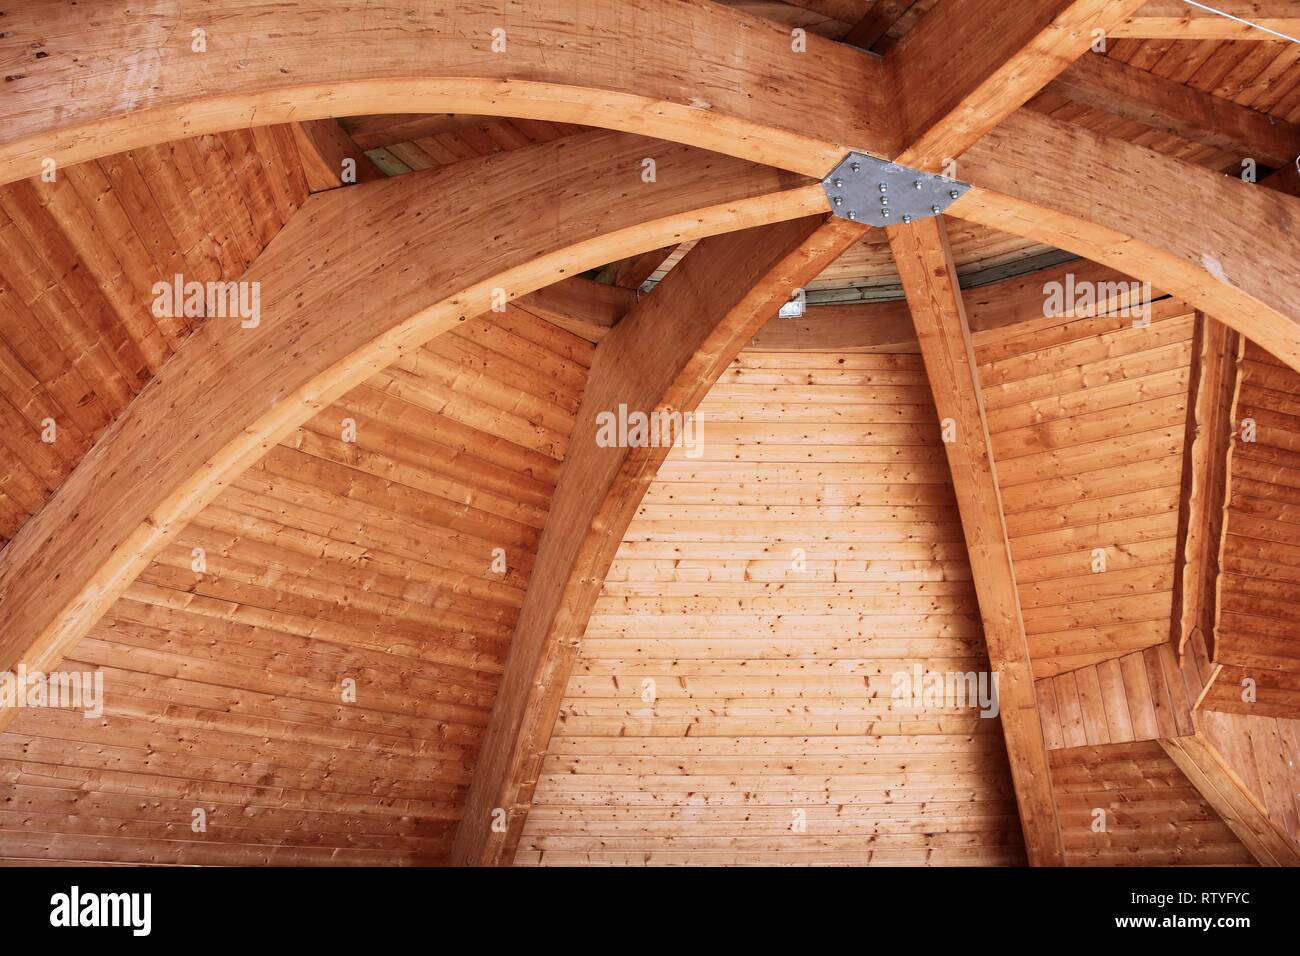 Wooden Roof Structure Curved Beam Traditional Construction Style